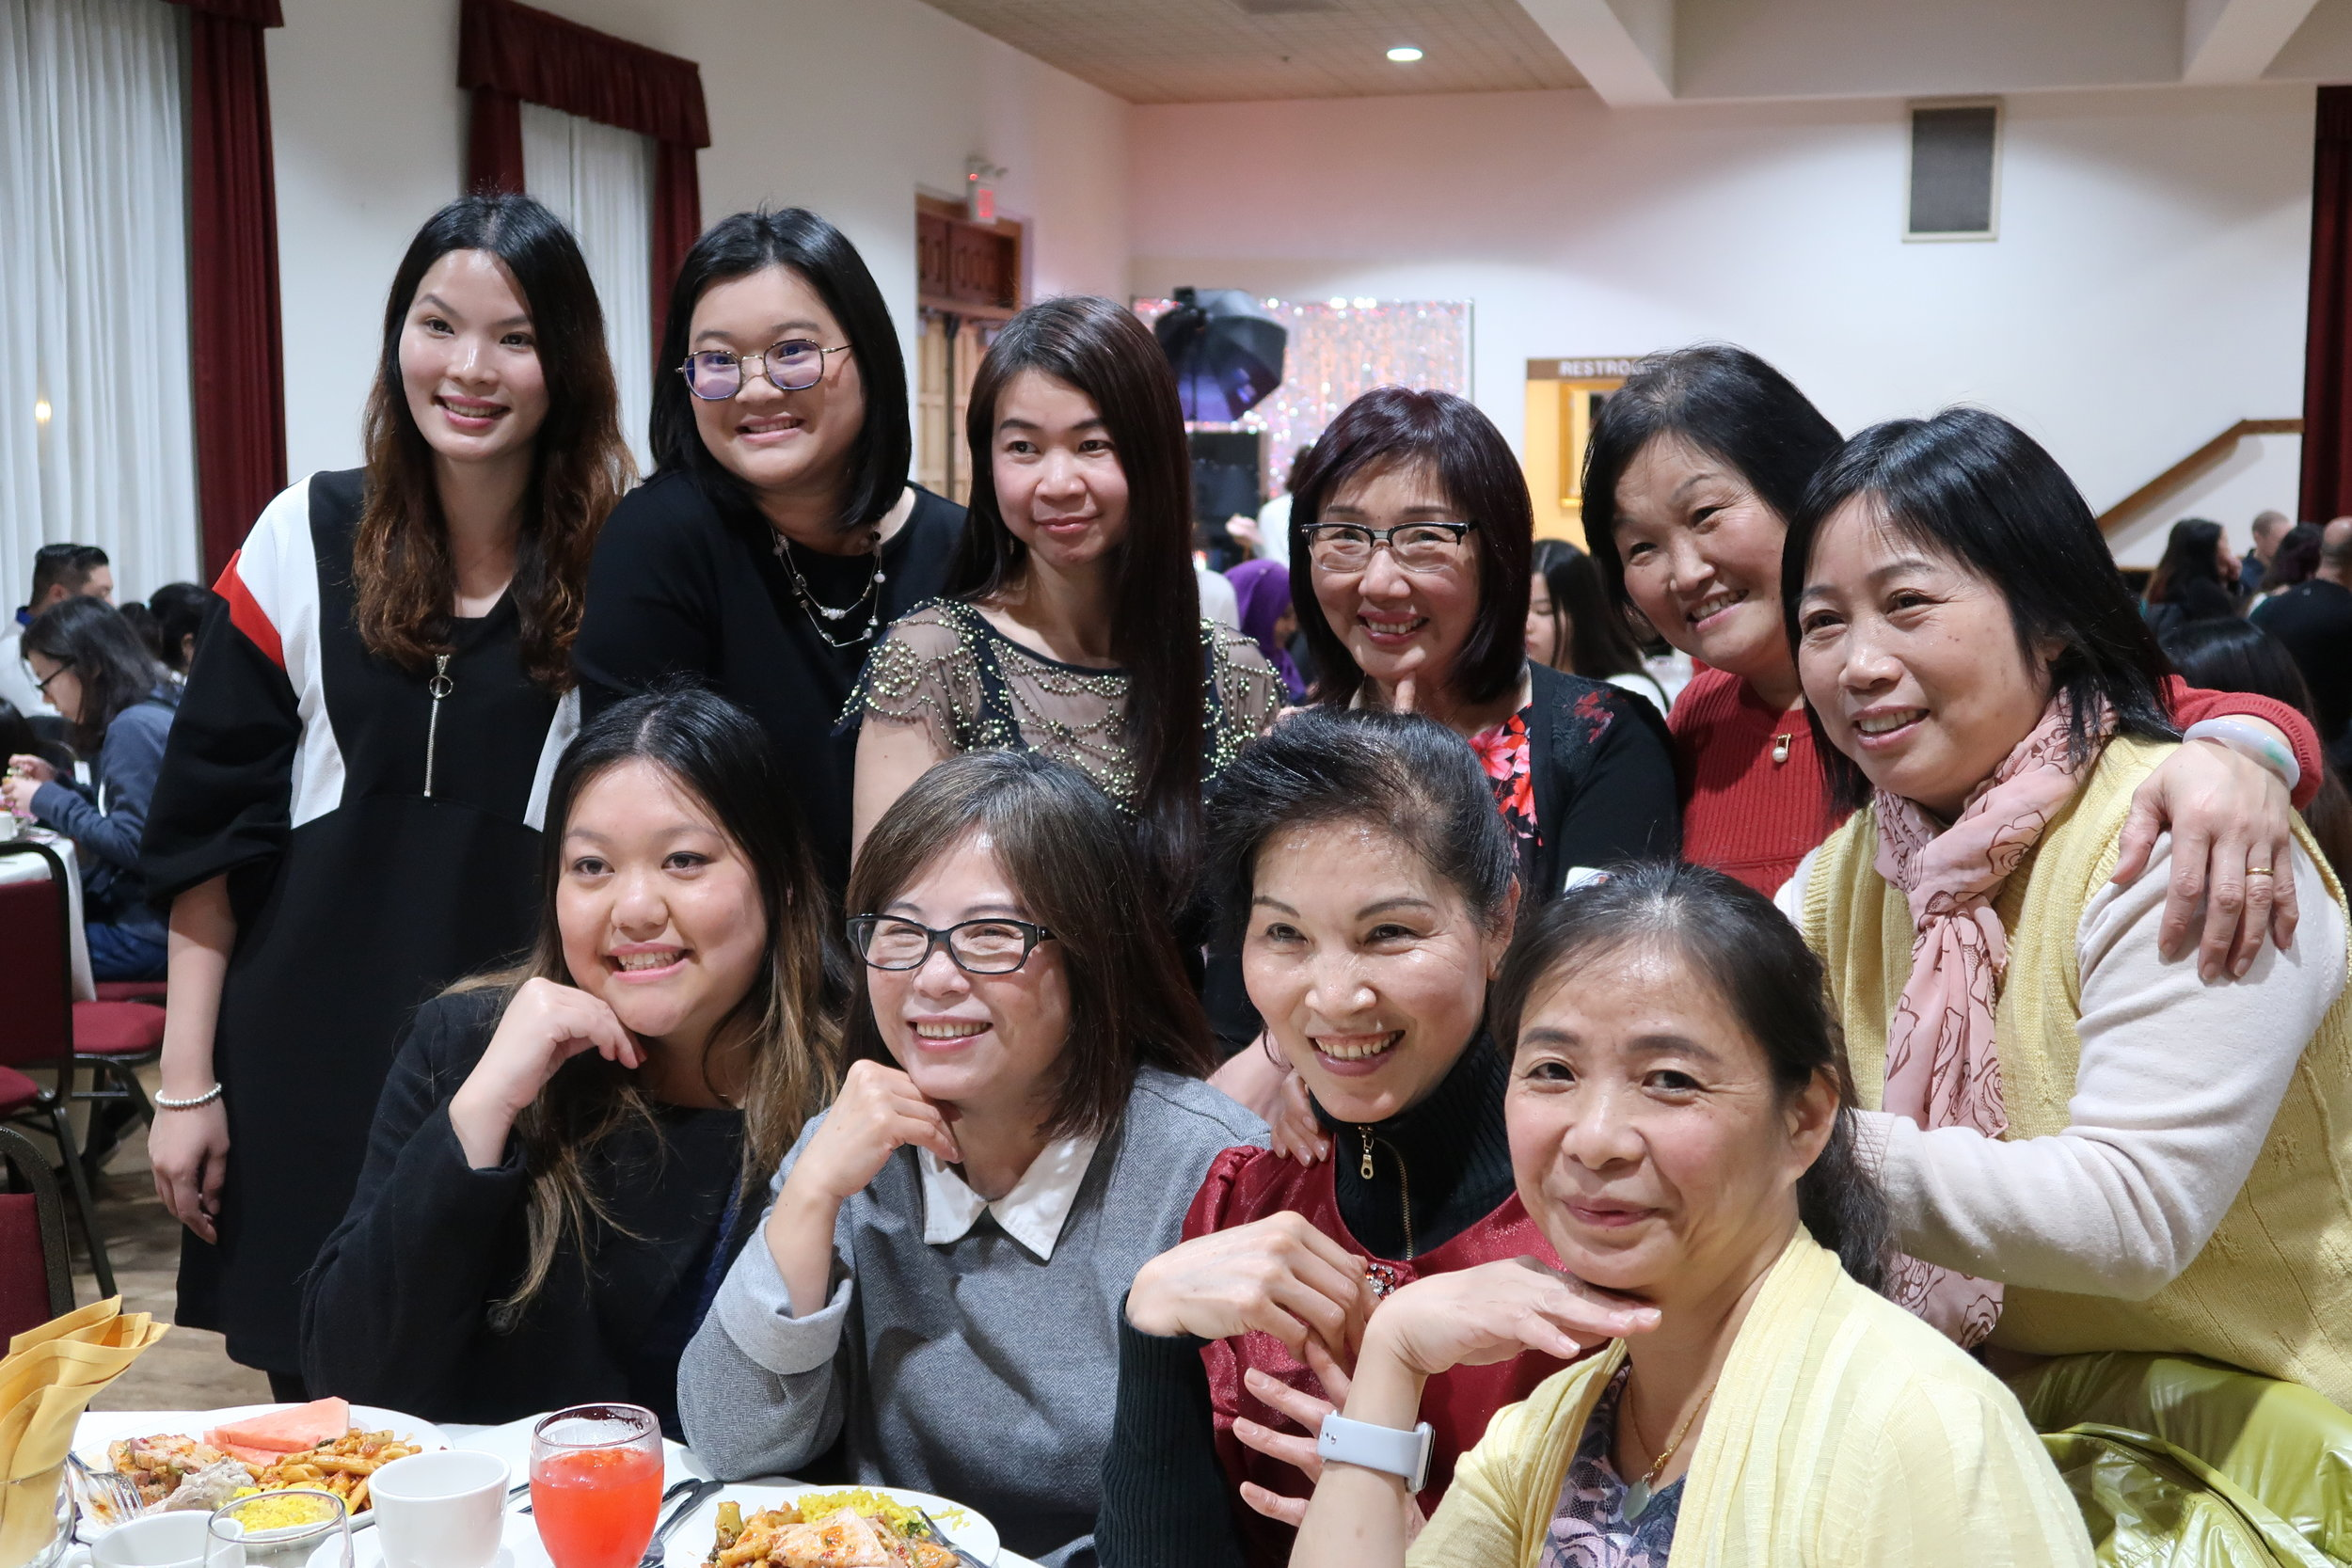 2019.01.11 Staff Holiday Party 063.JPG